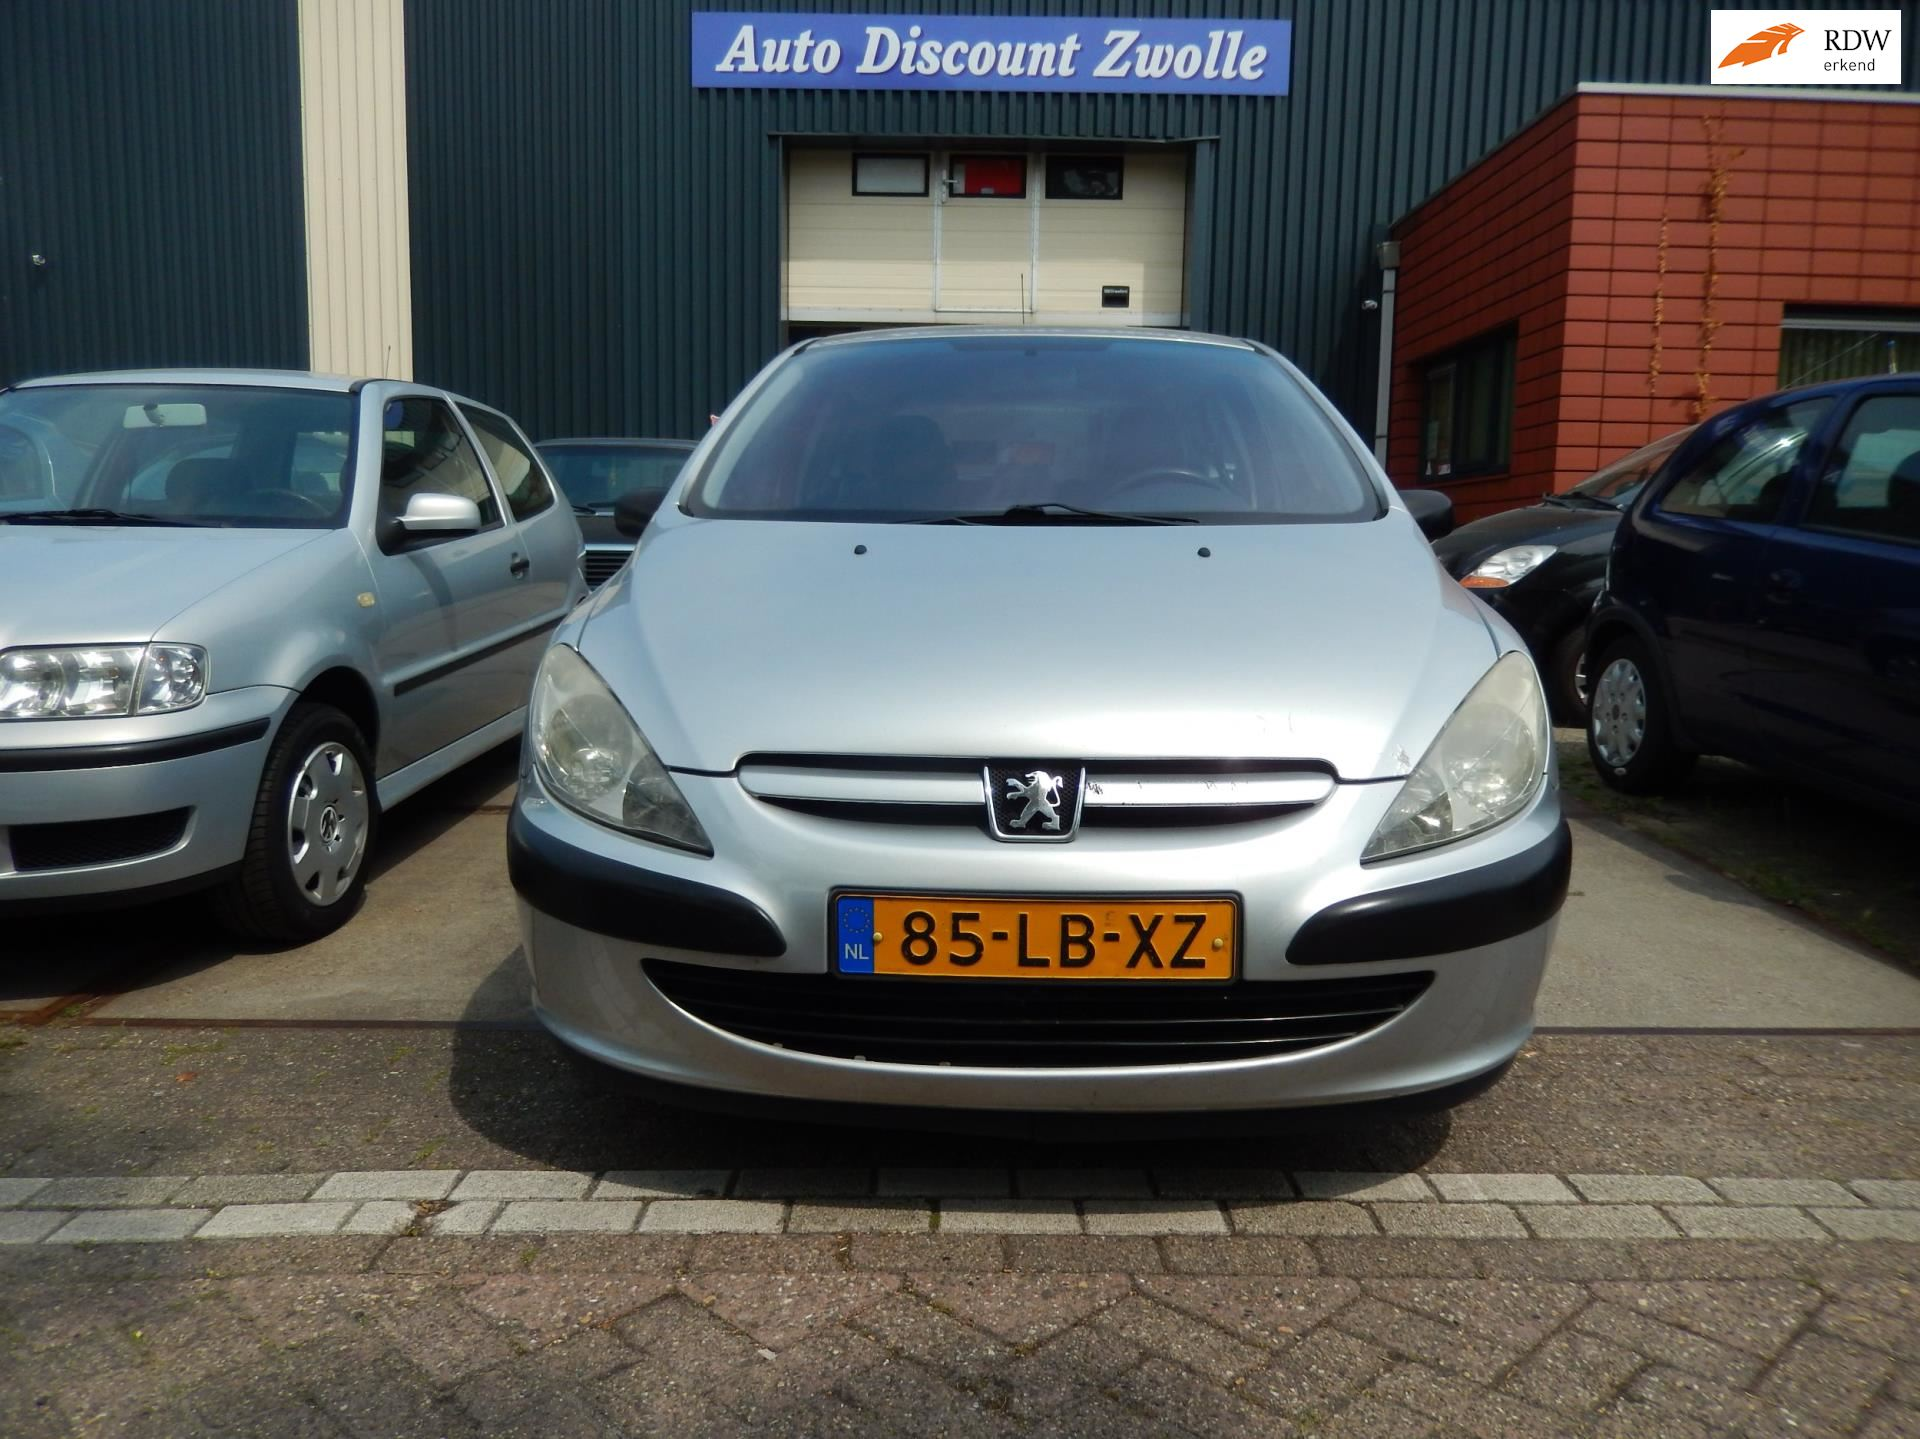 Peugeot 307 occasion - Auto Discount Zwolle